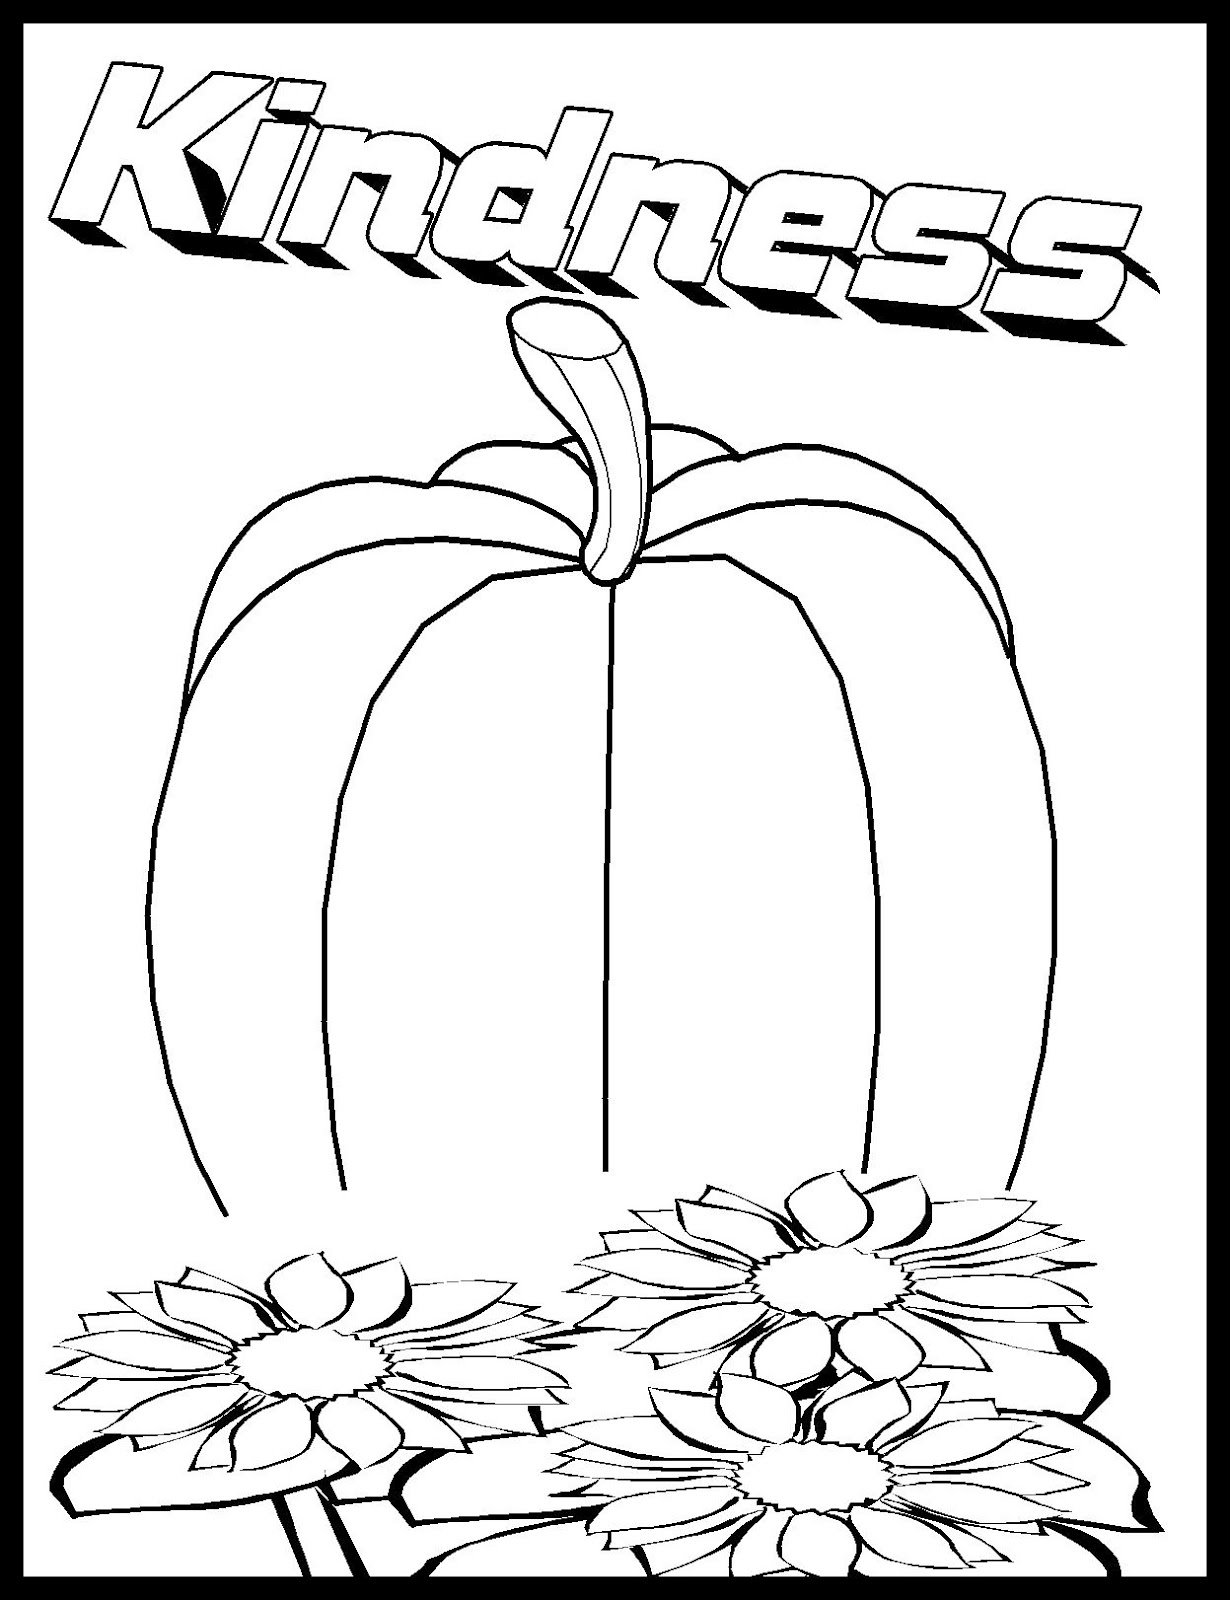 kindness coloring pages free - photo#5